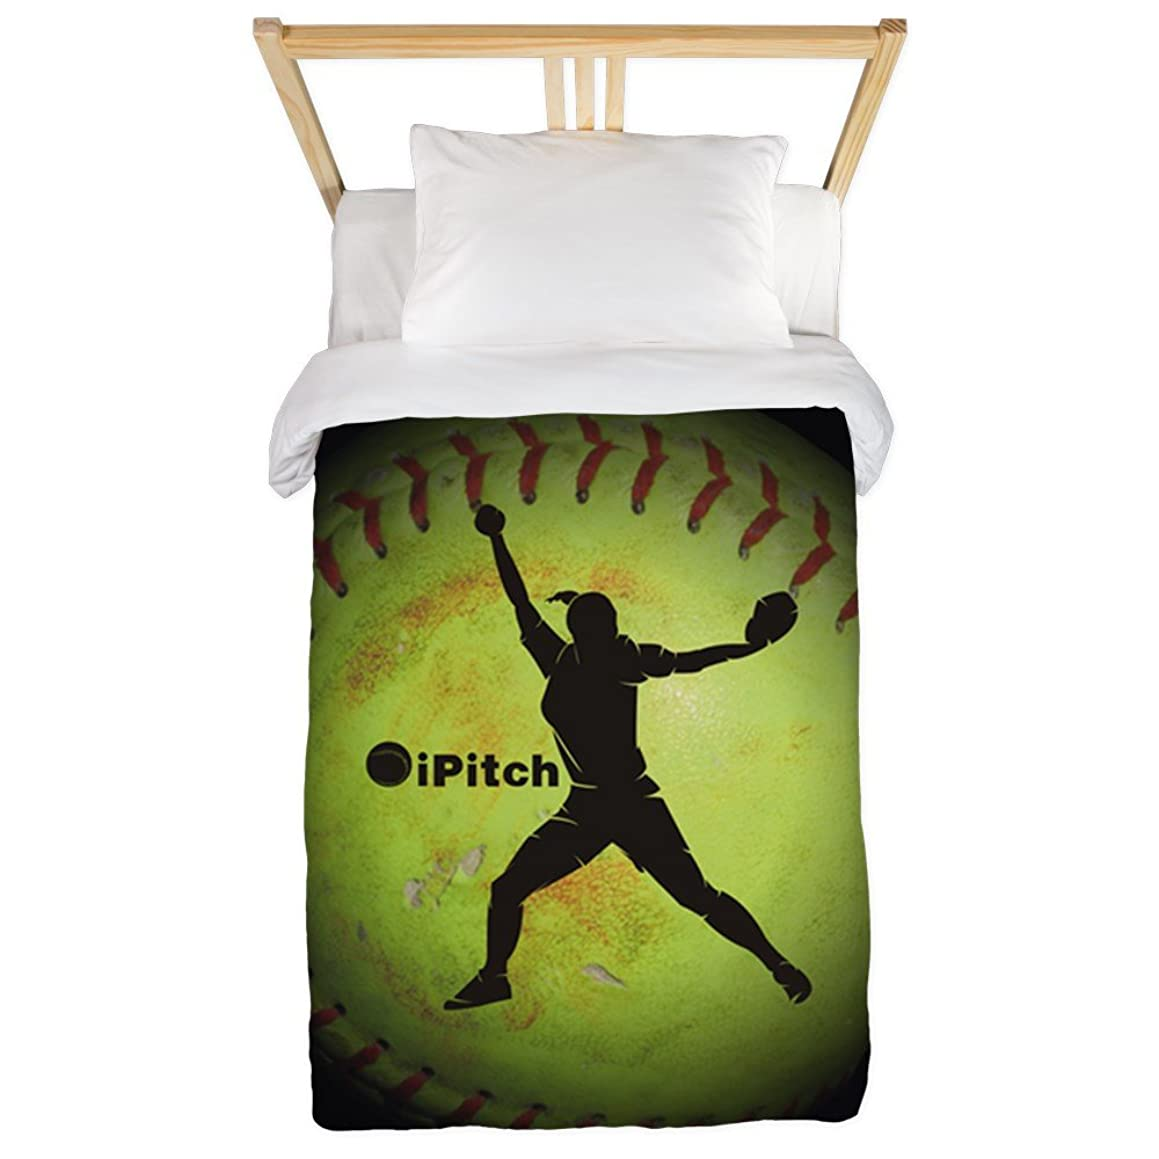 CafePress - Ipitch Fastpitch Softball (Right Handed) Twin Duve - Twin Duvet Cover, Printed Comforter Cover, Unique Bedding, Microfiber